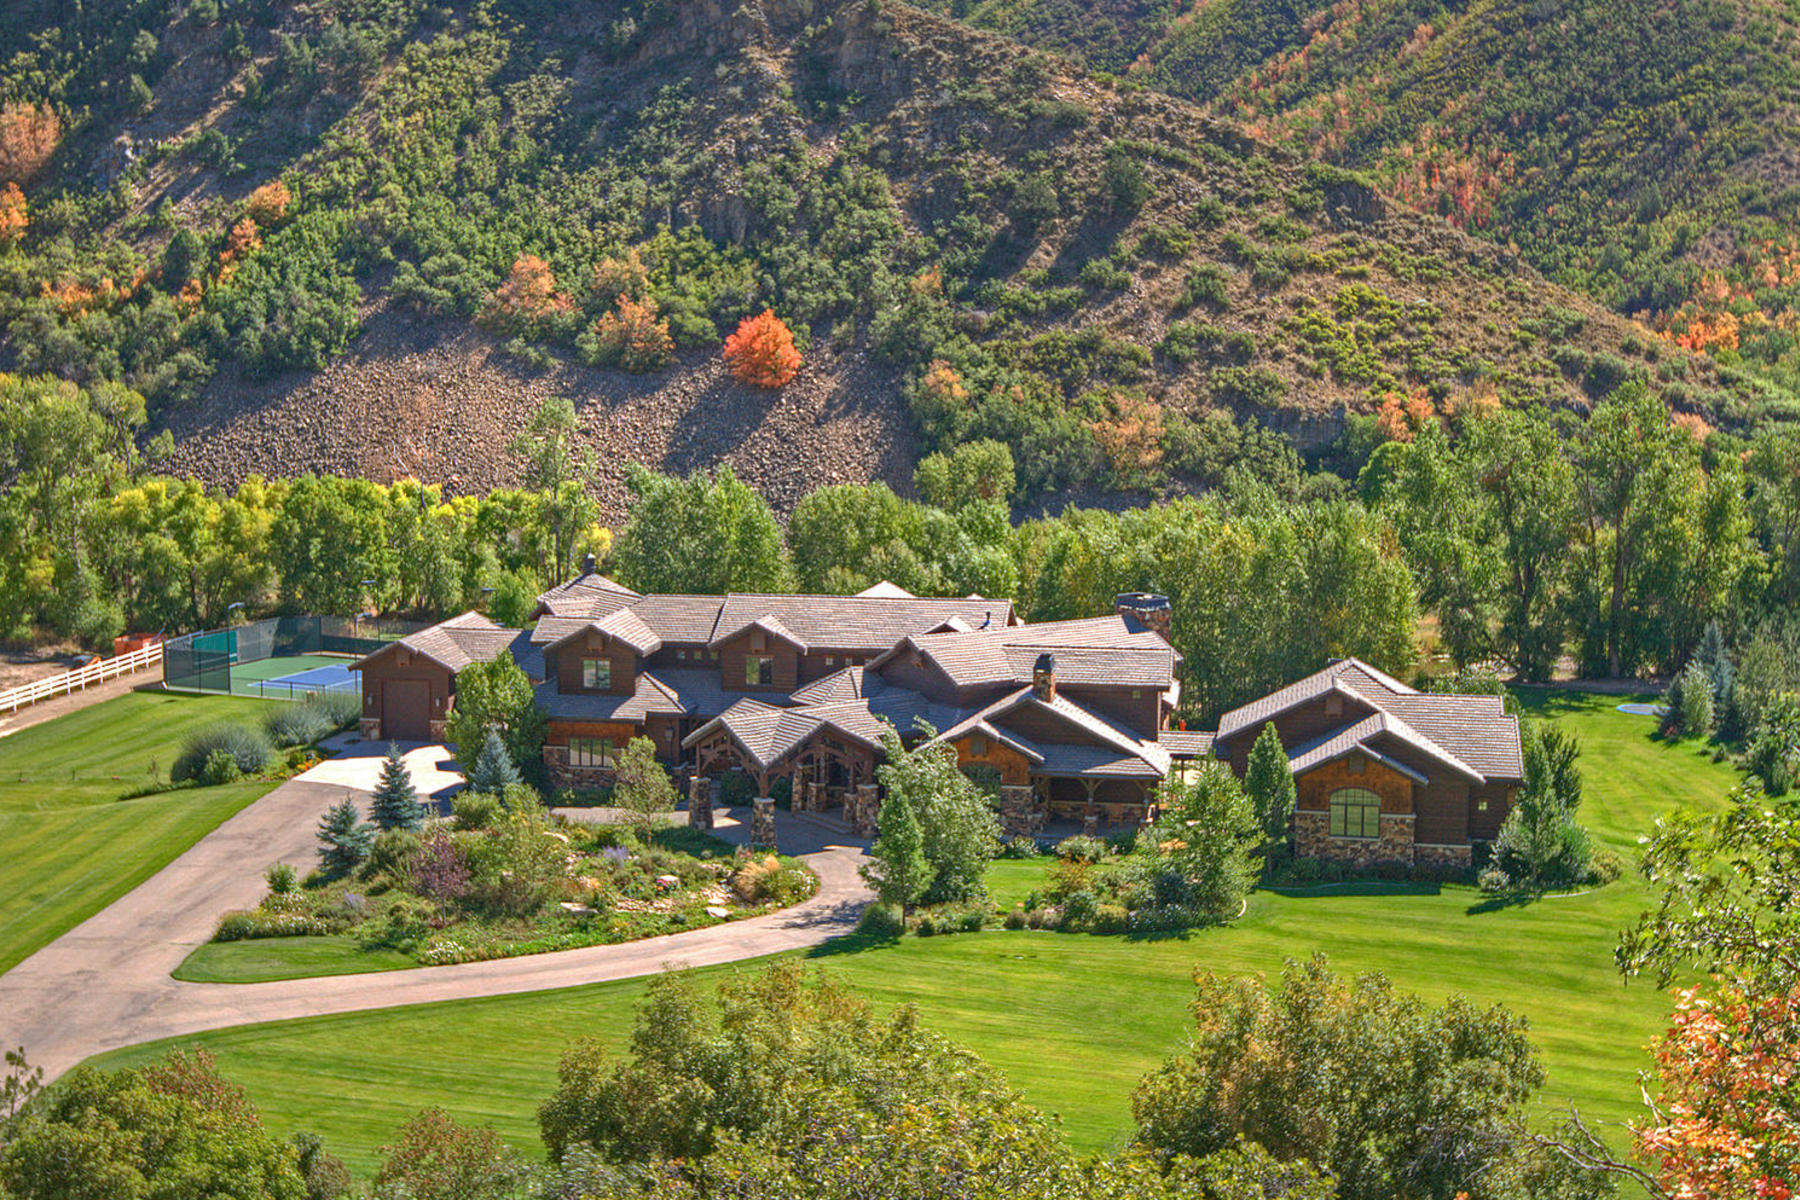 Tek Ailelik Ev için Satış at Incredible Estate in Hobble Creek Canyon 887 Hobble Creek Canyon Rd Springville, Utah, 84663 Amerika Birleşik Devletleri